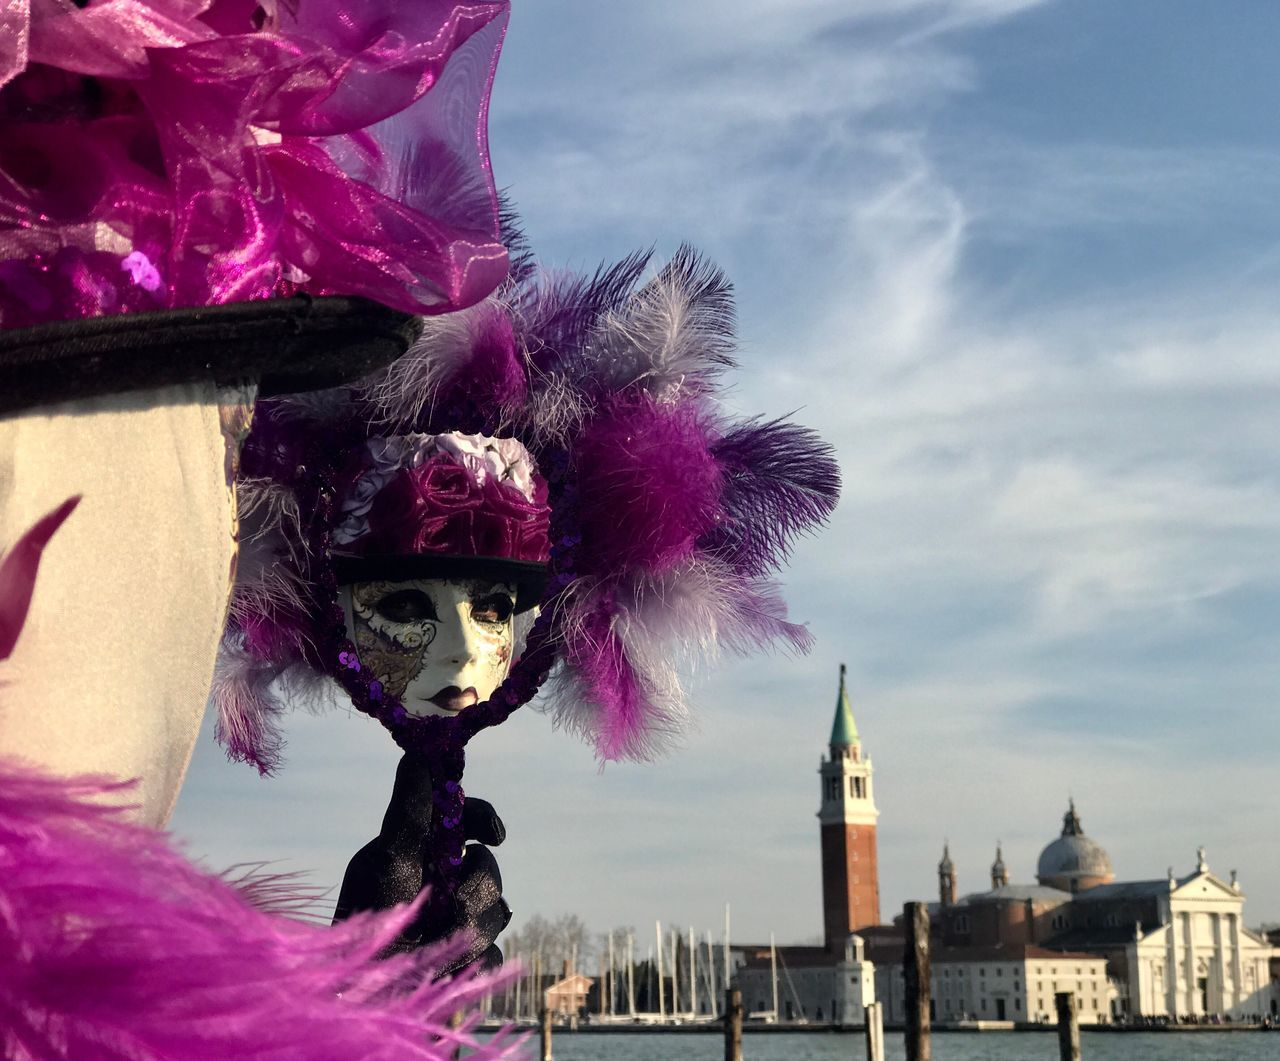 Carnival in Venice Carnival Crowds And Details Carnival Masks Telling Stories Differently Shootermagazine Travel Photography EyeEm Best Edits Shootermag_portugal Lensculture EyeEm Best Shots Mob Fiction EyeEm Gallery IPhone7Plus Mobgraphia Shootermag Mobiography Youmobile Mobitog